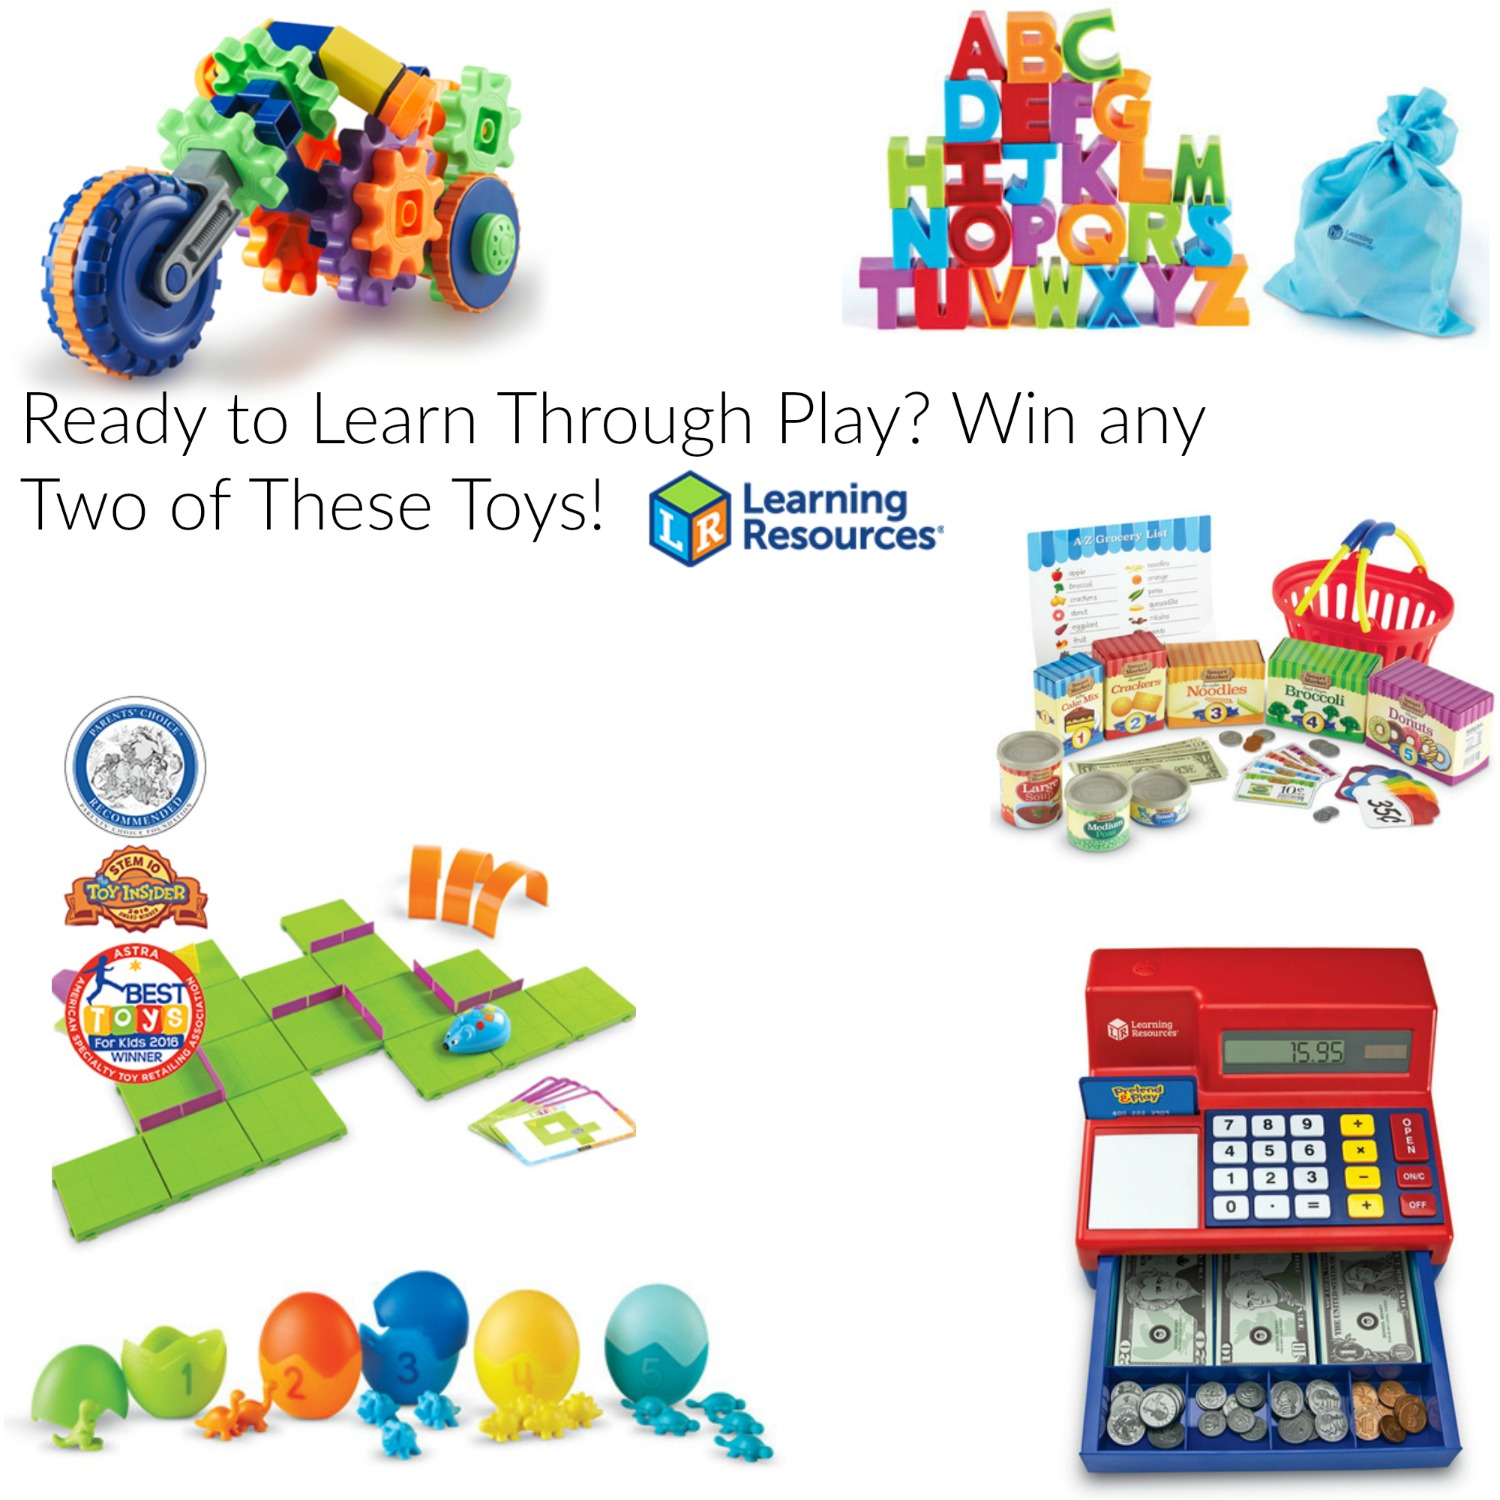 Learning Resources Giveaway